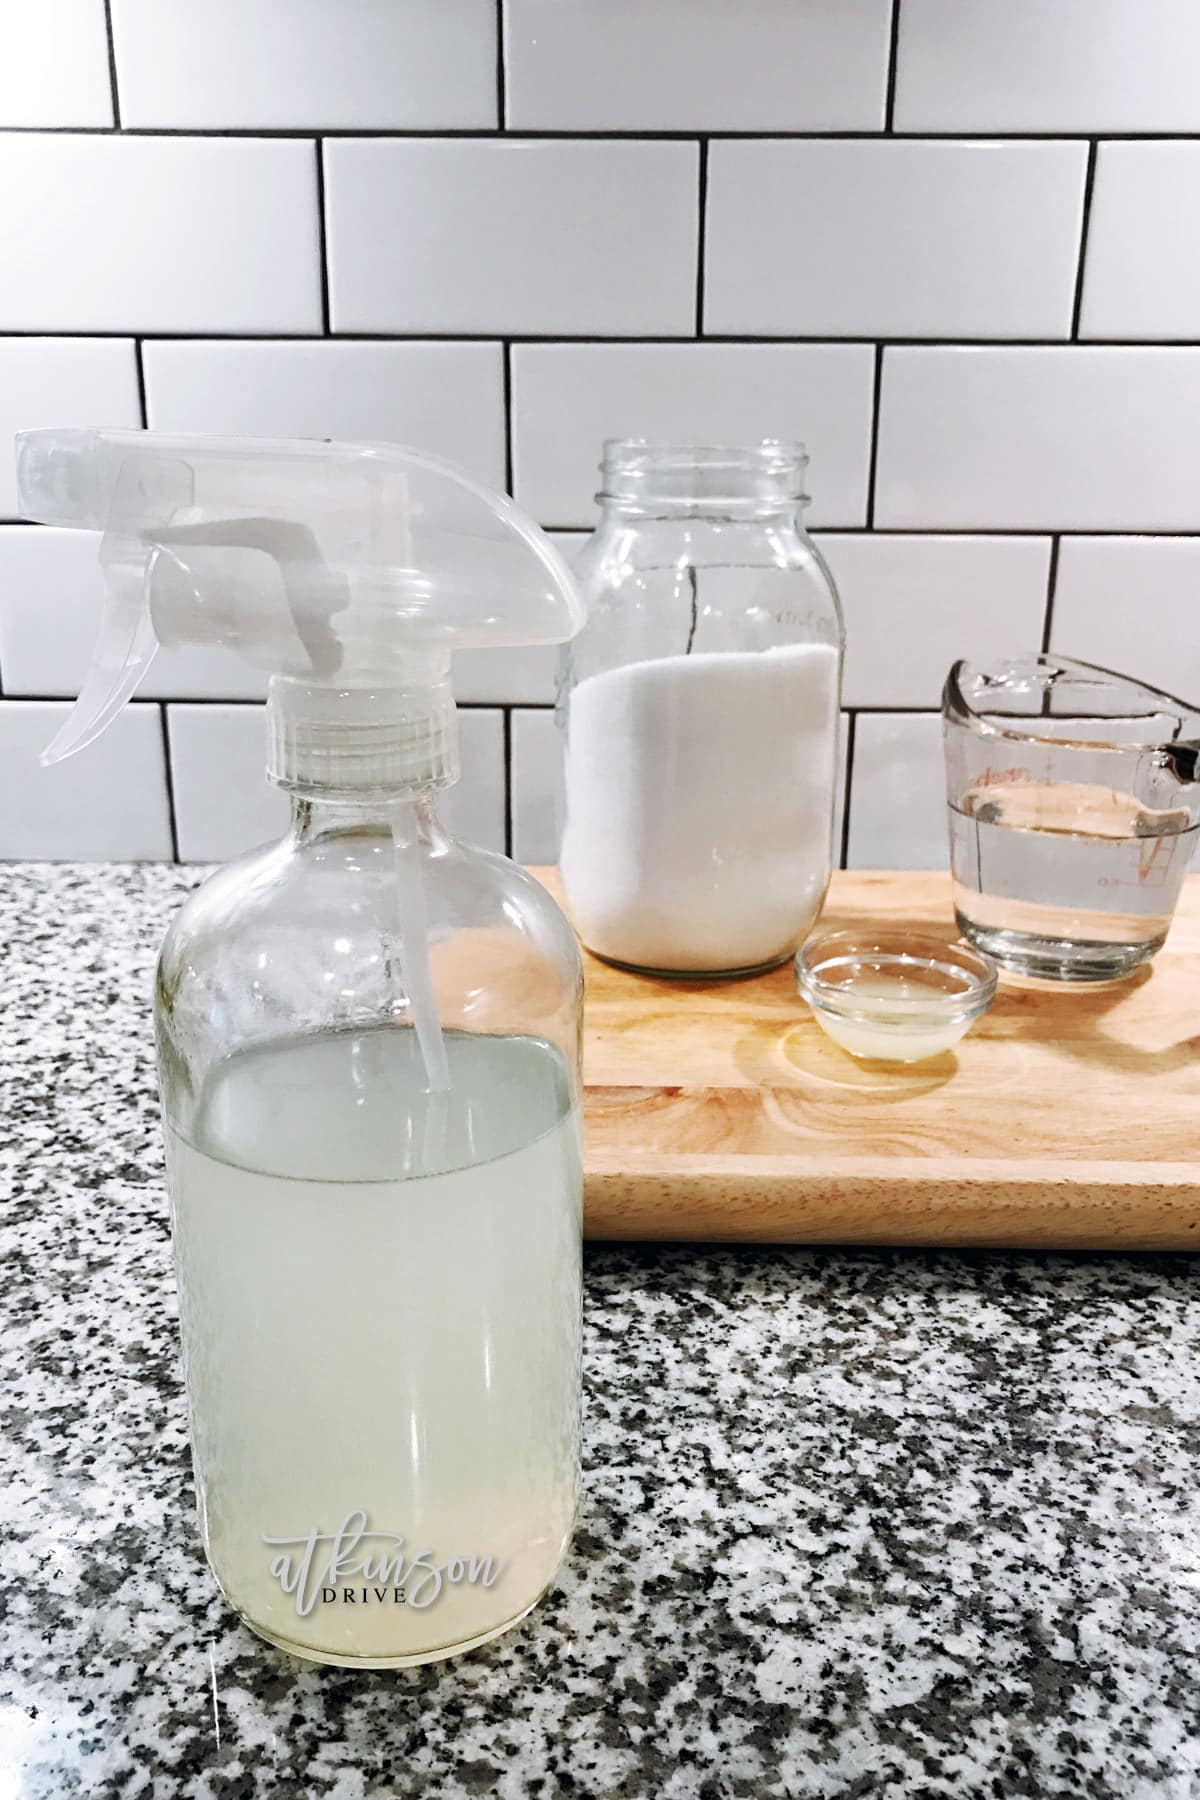 This homemade produce wash is not only safe for your family, but it has natural properties to get rid of bacteria and bugs!